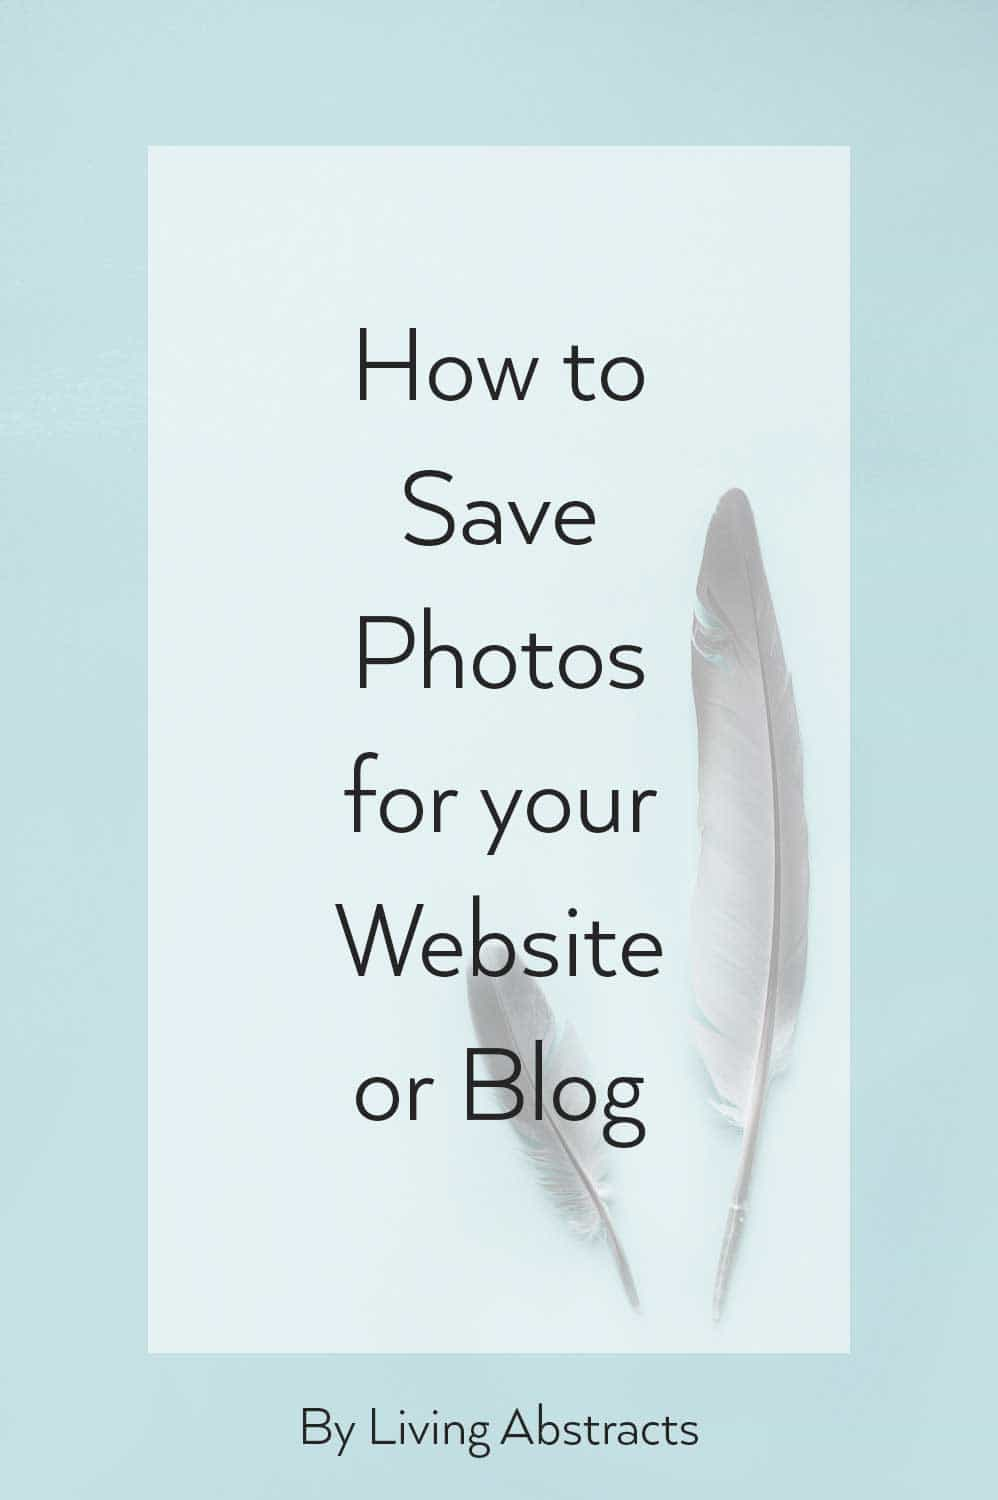 How to save photos for your website or blog so that they load quickly and are still crisp and sharp.